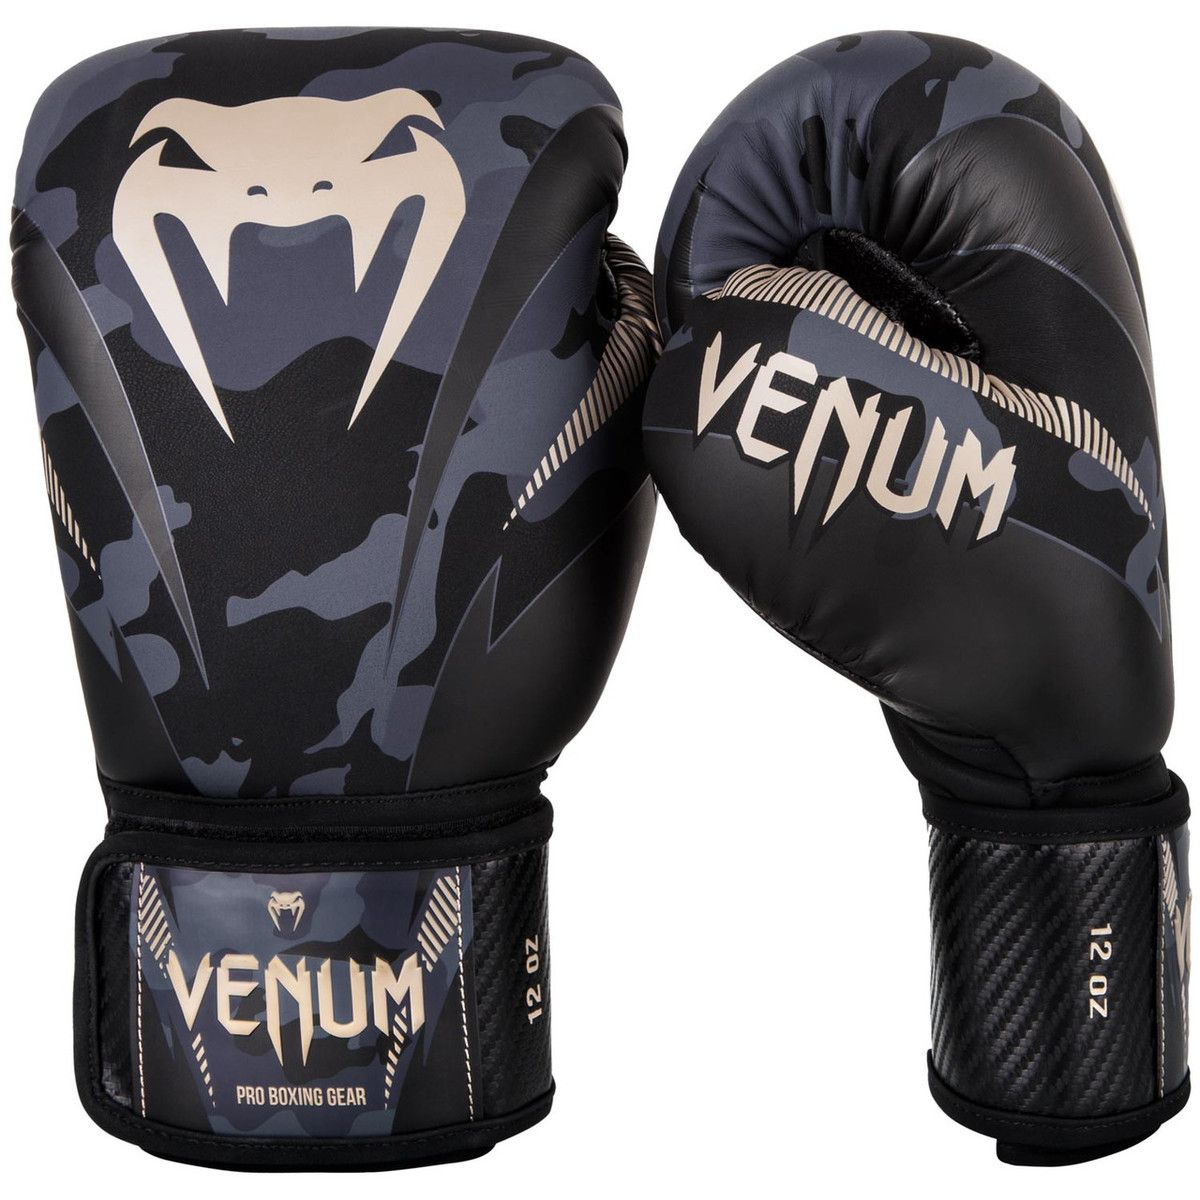 Venum Impact Boxing Gloves Camo With Images Boxing Gloves Mma Gloves Muay Thai